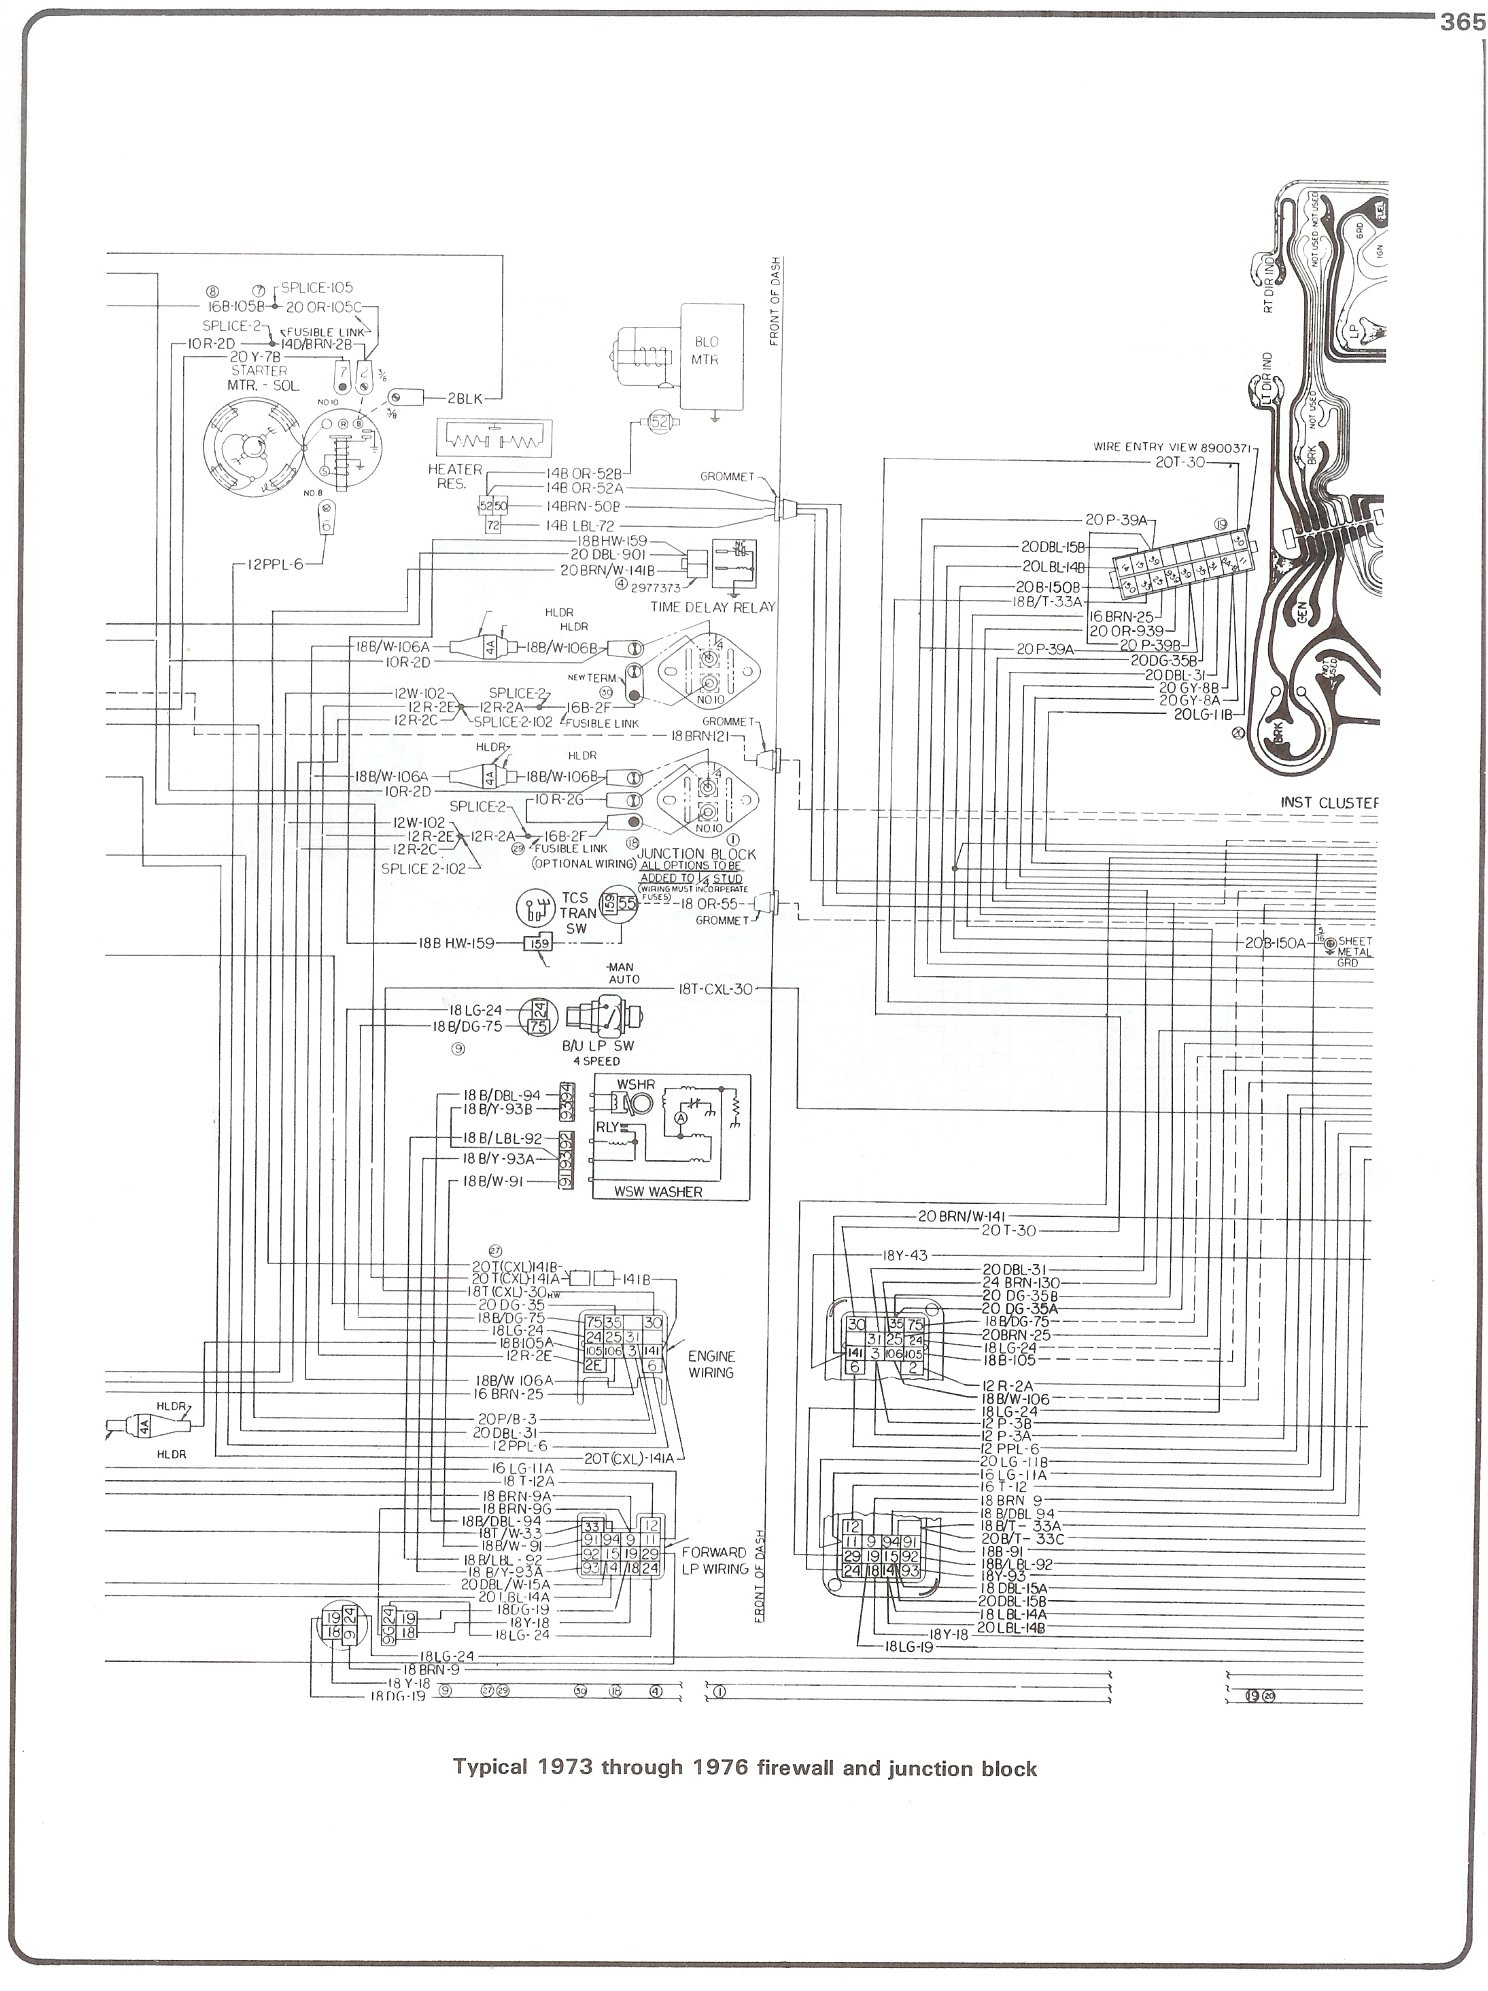 chevy truck wiring harness diagram on 1979